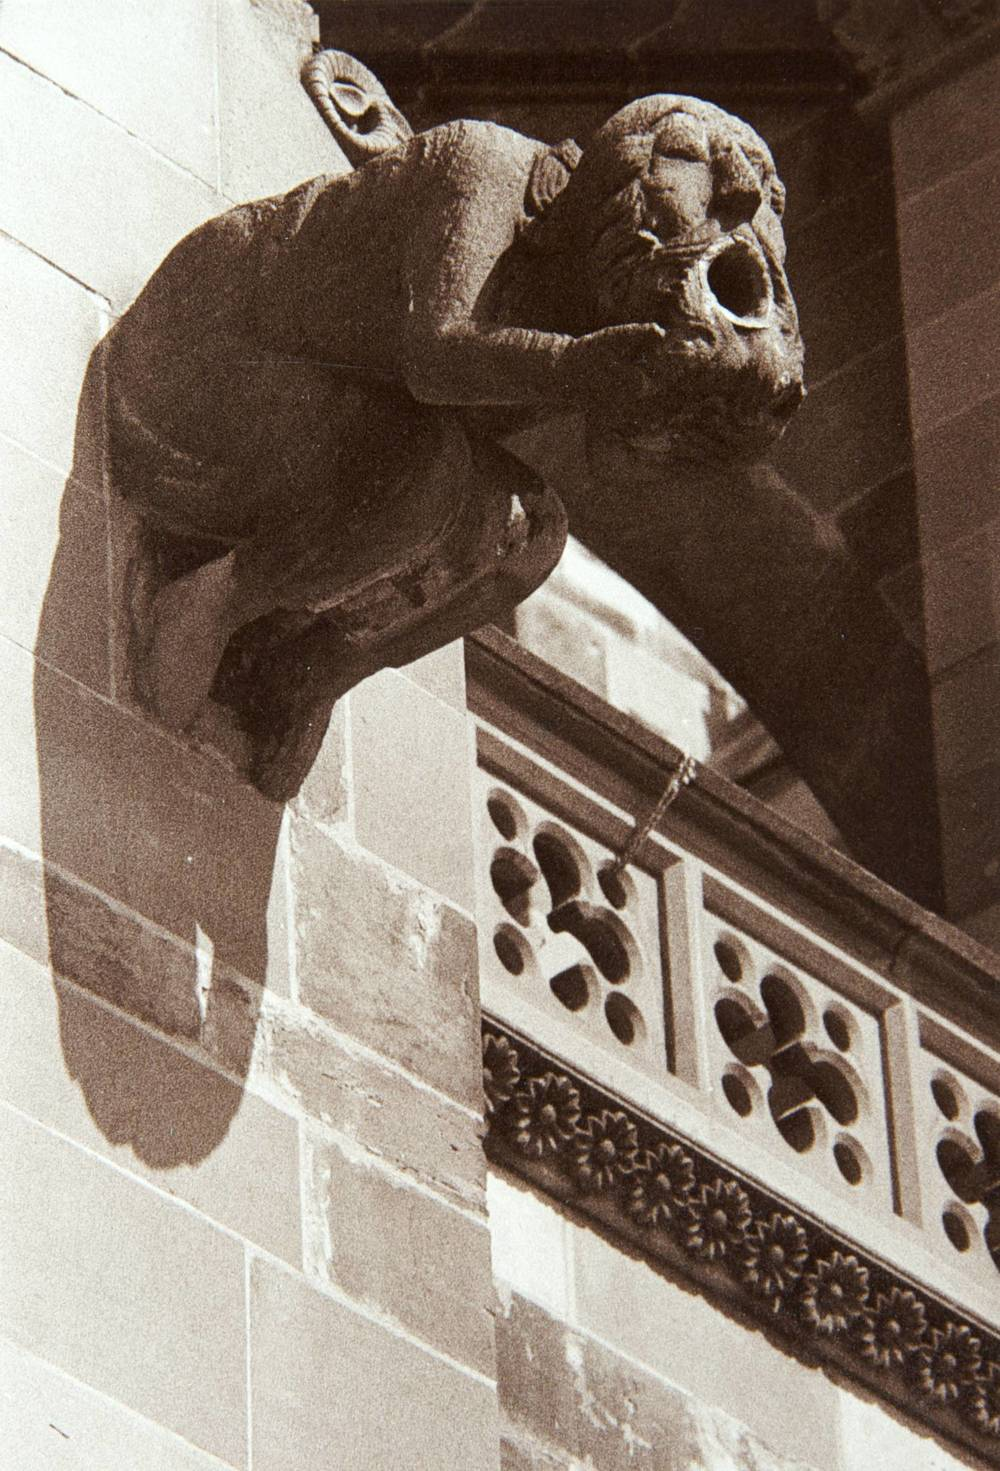 Gargoyle (Germany)